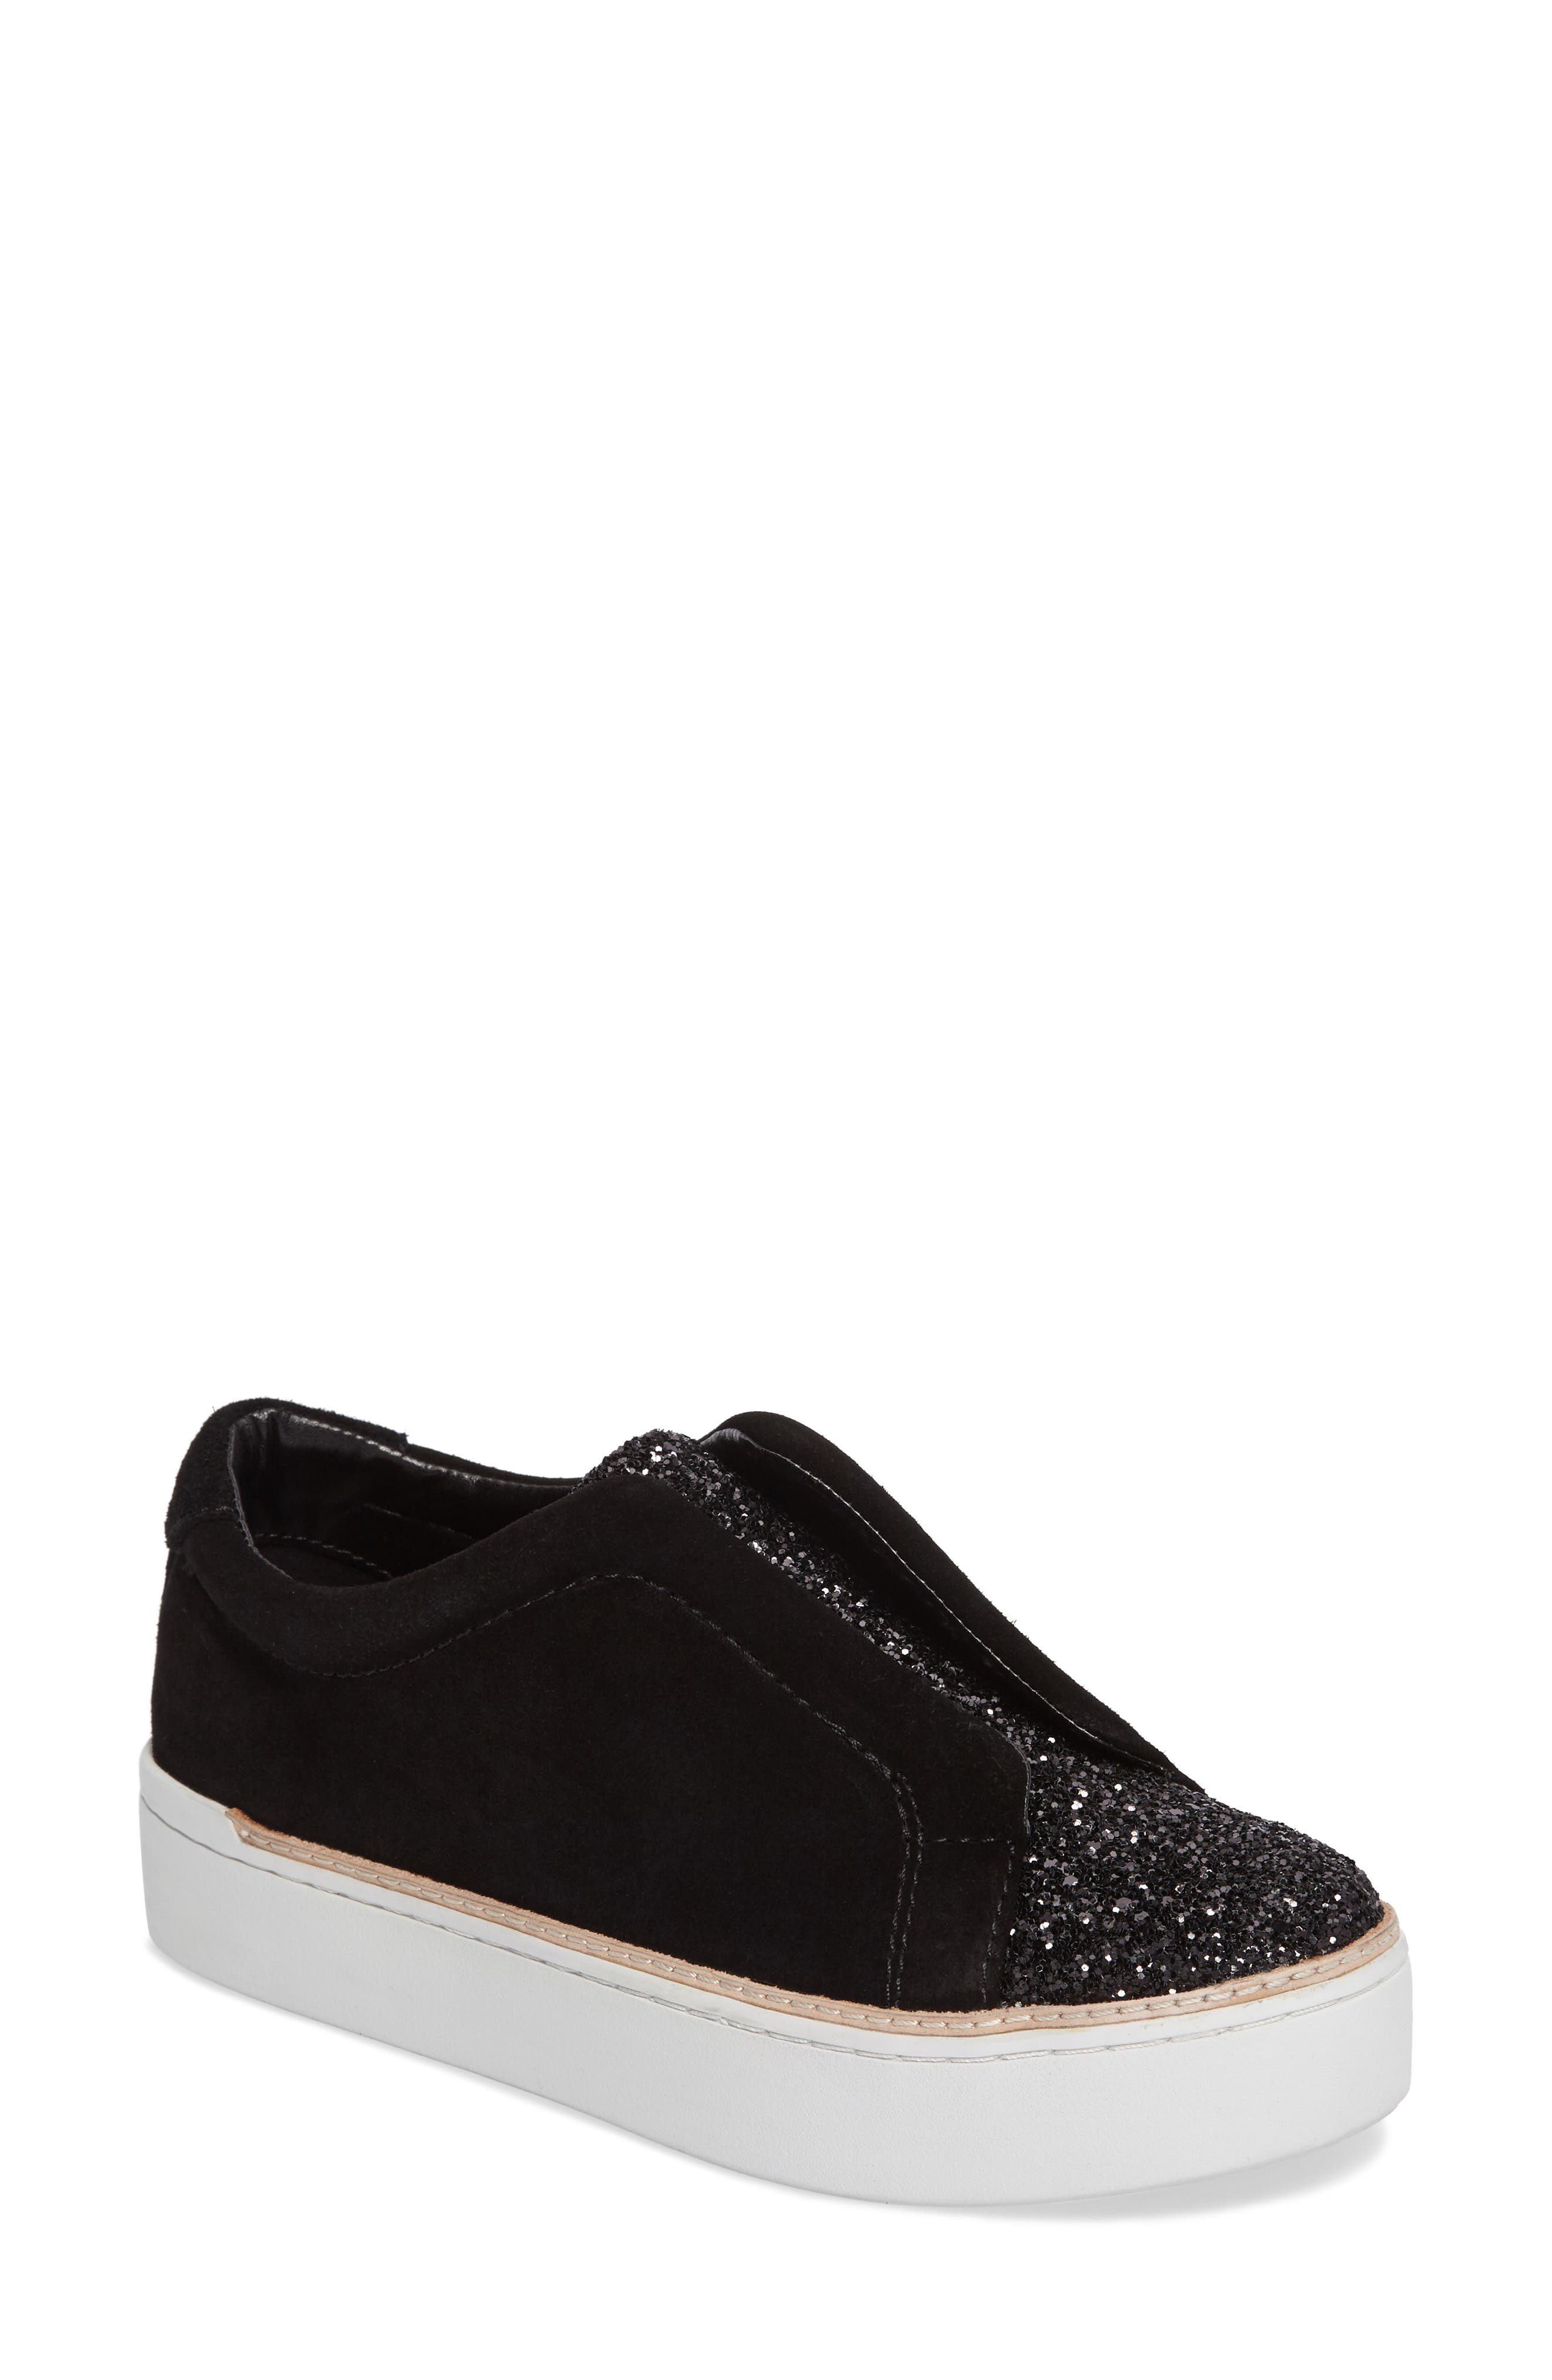 M4D3 Super Slip-On Sneaker,                             Main thumbnail 1, color,                             BLACK GLITTER LEATHER